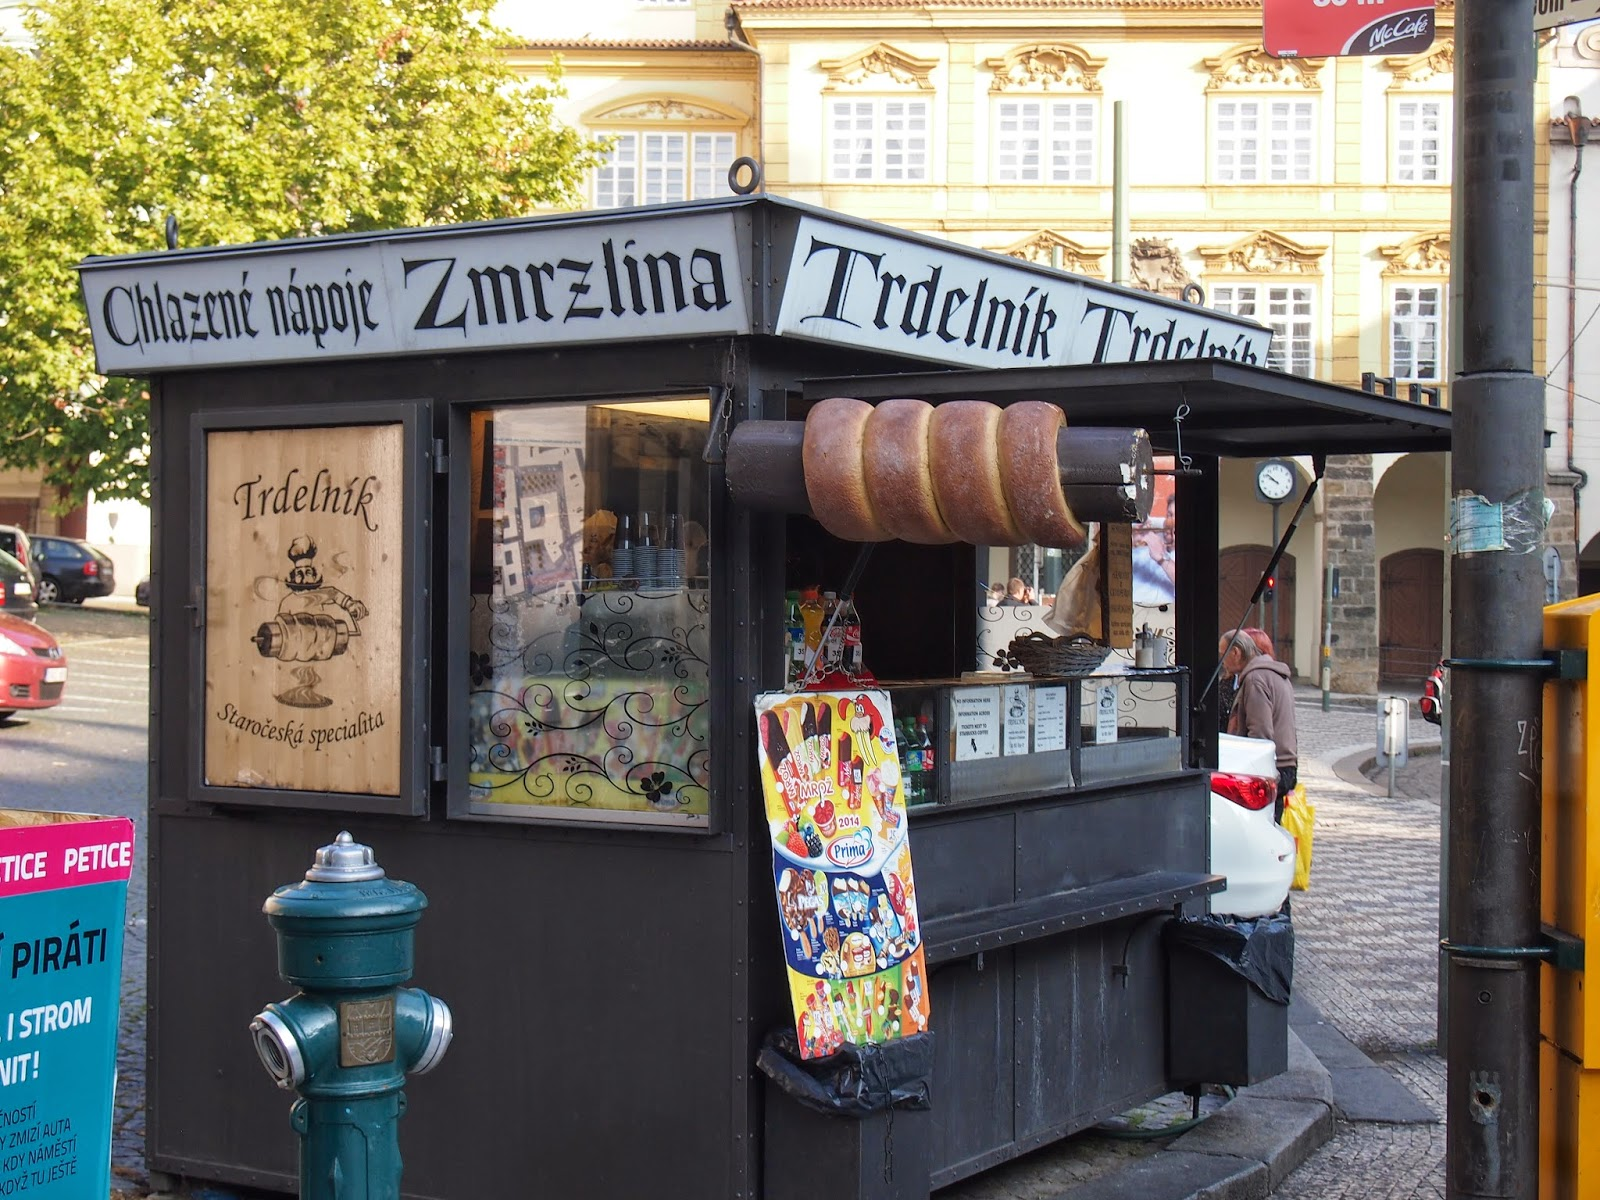 A Stand selling Trdelnik pastries in Prague